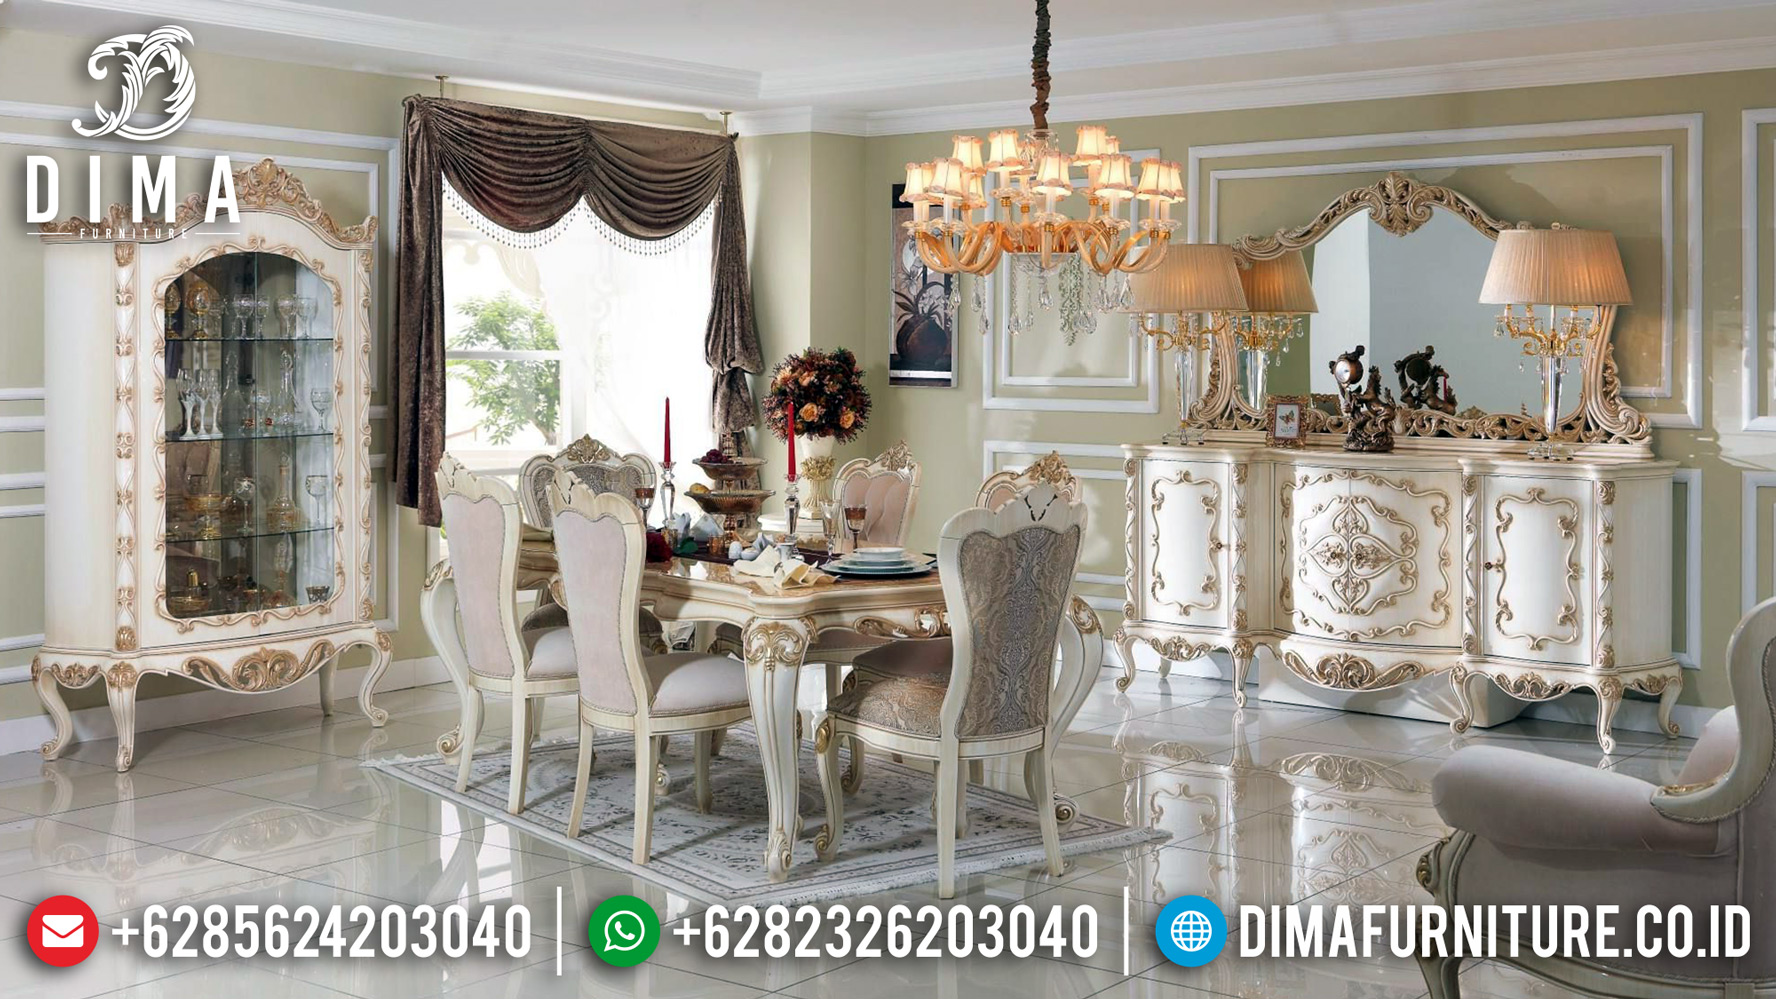 New Sale Meja Makan Mewah Klasik Furniture Jepara Broken White DF-1201